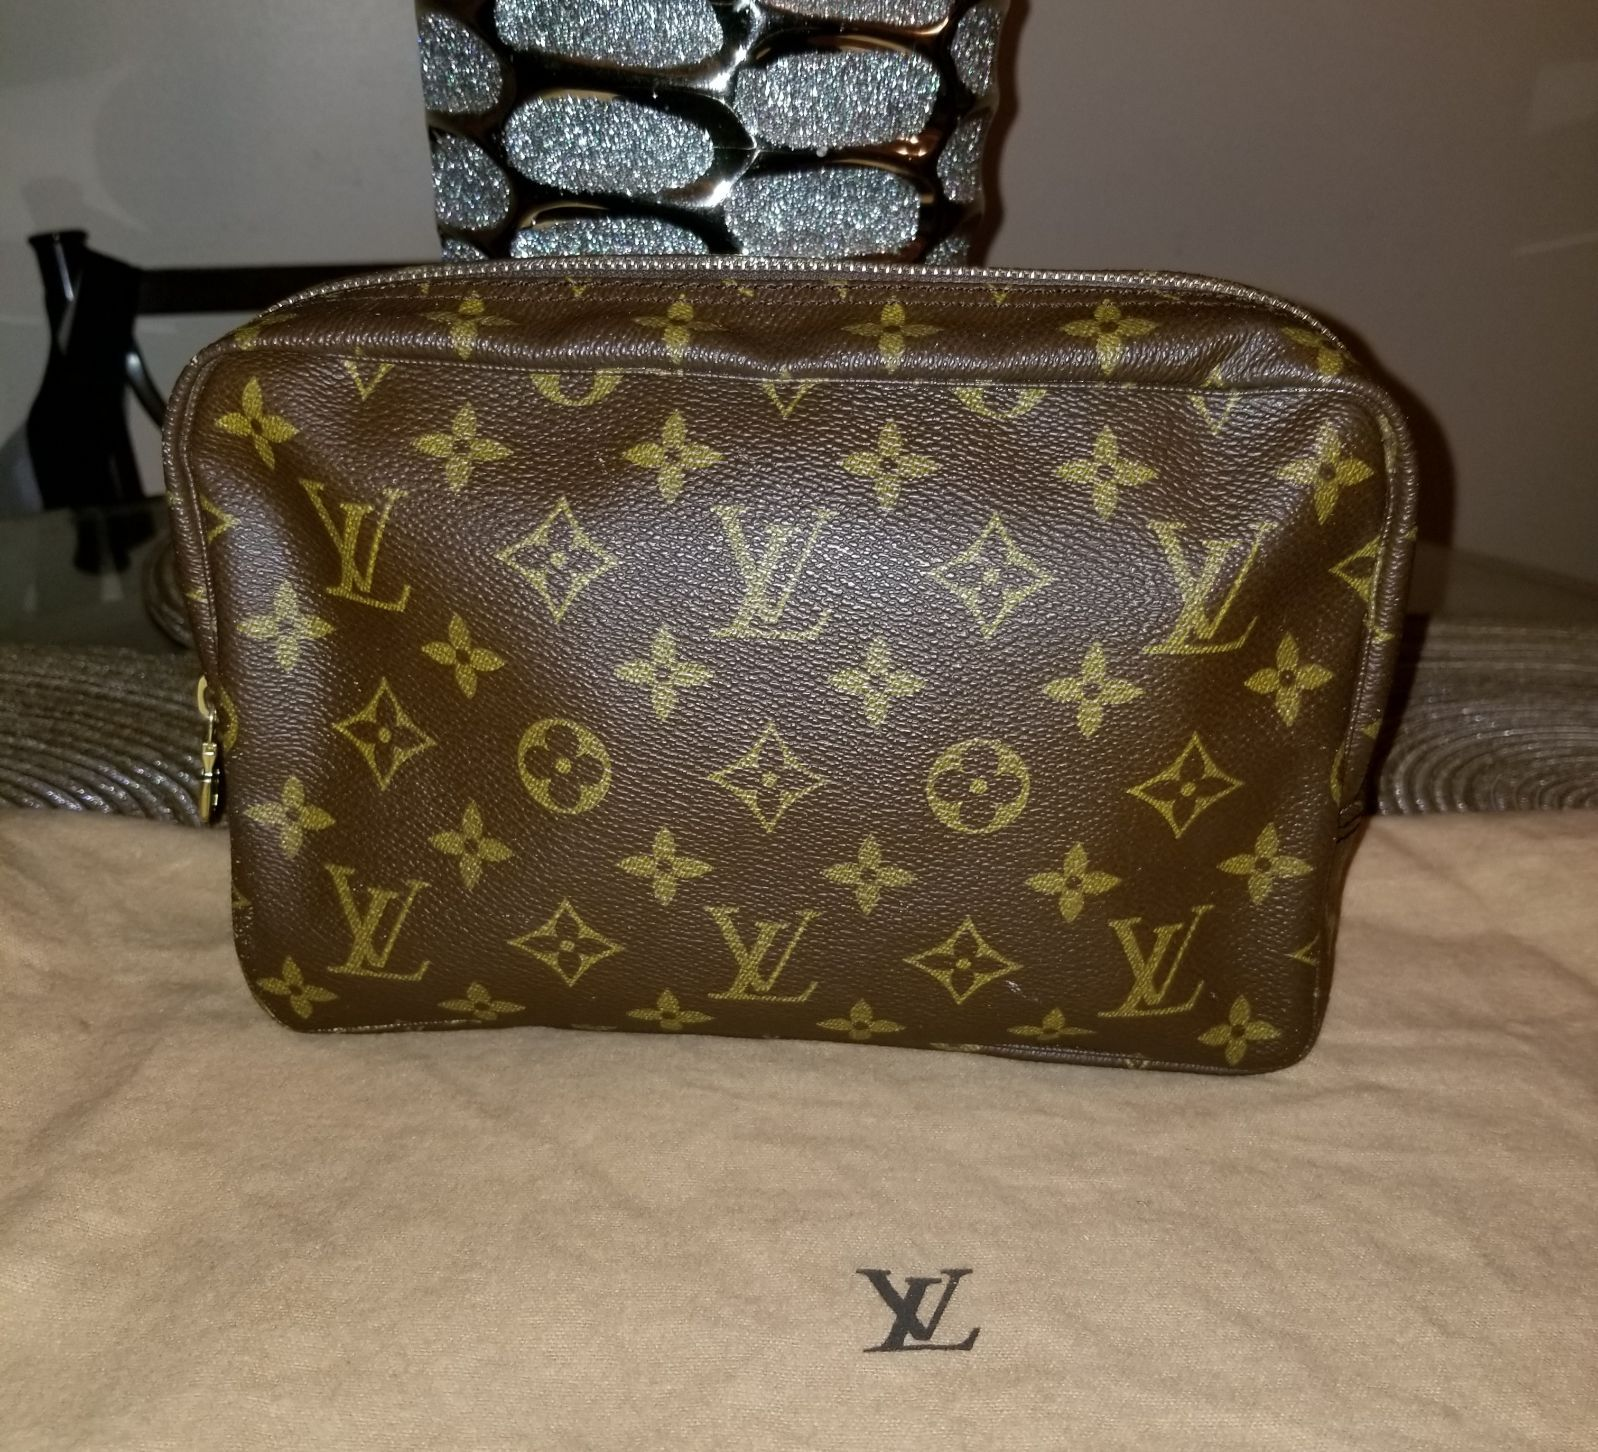 Preloved Lv Trousse Toilette 23 Has Some Scuffs And Scratches On Exterior Canvas Peeling And Stickiness In The Louis Vuitton Cosmetic Bag Bags Louis Vuitton